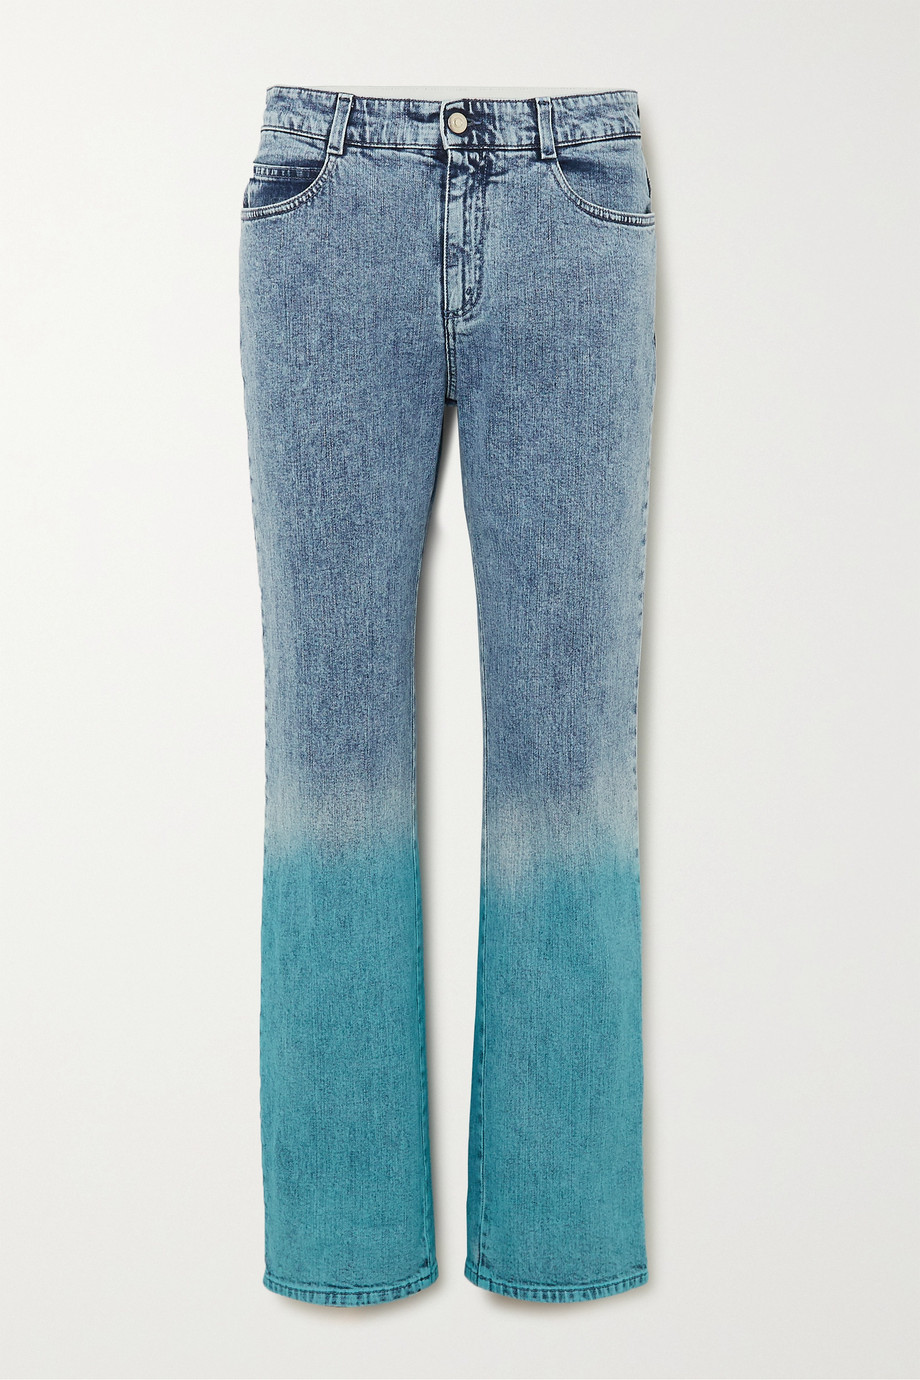 Stella McCartney Dégradé mid-rise straight-leg jeans